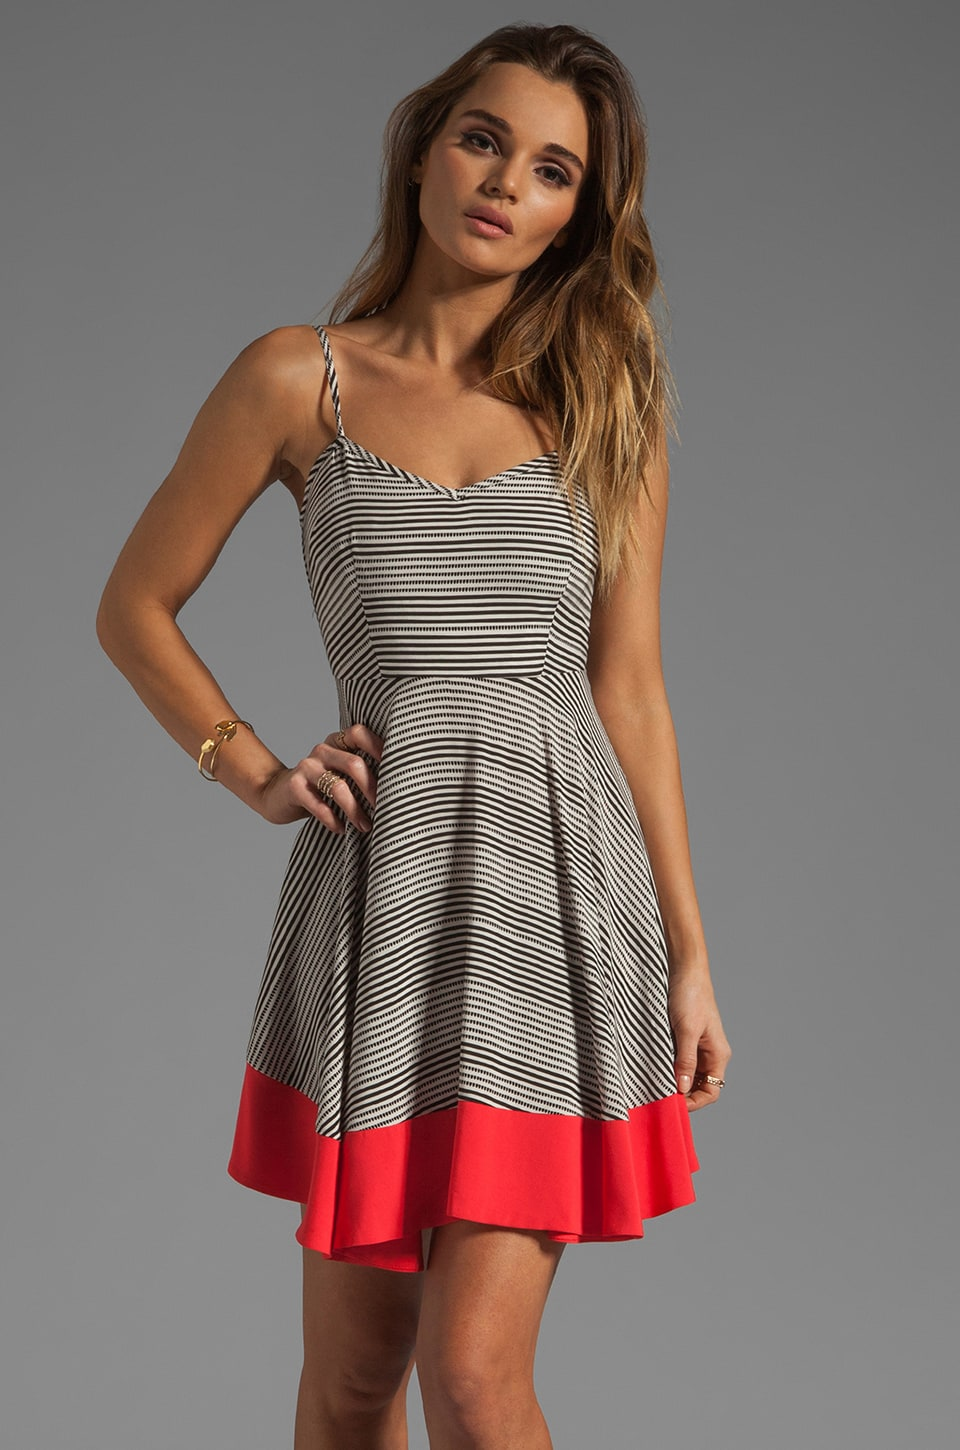 BB Dakota Nash Striped Dress in Black/Whitecap/Popred